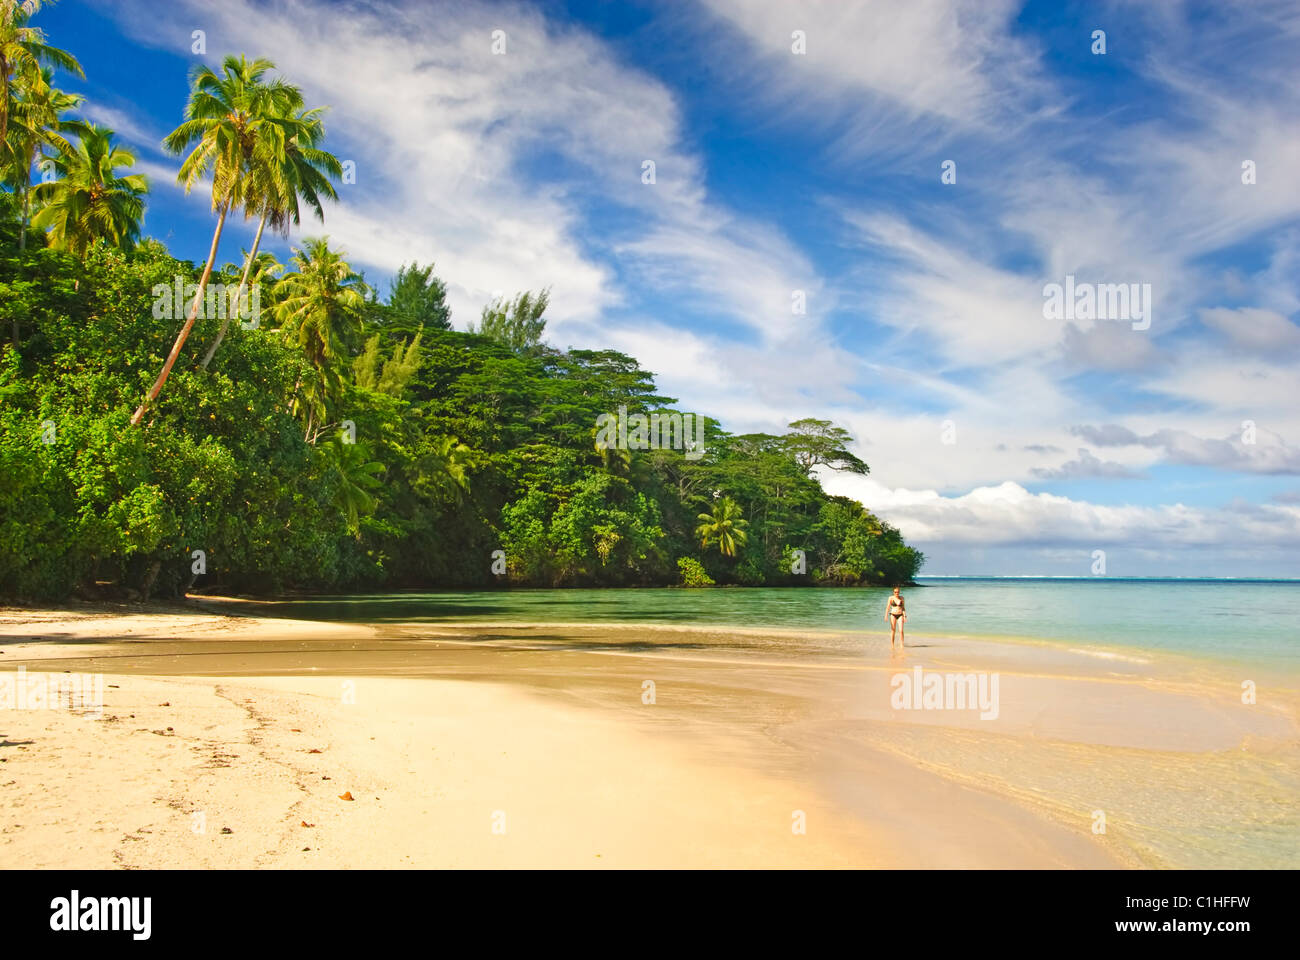 tropical beach in french polynesia - Stock Image